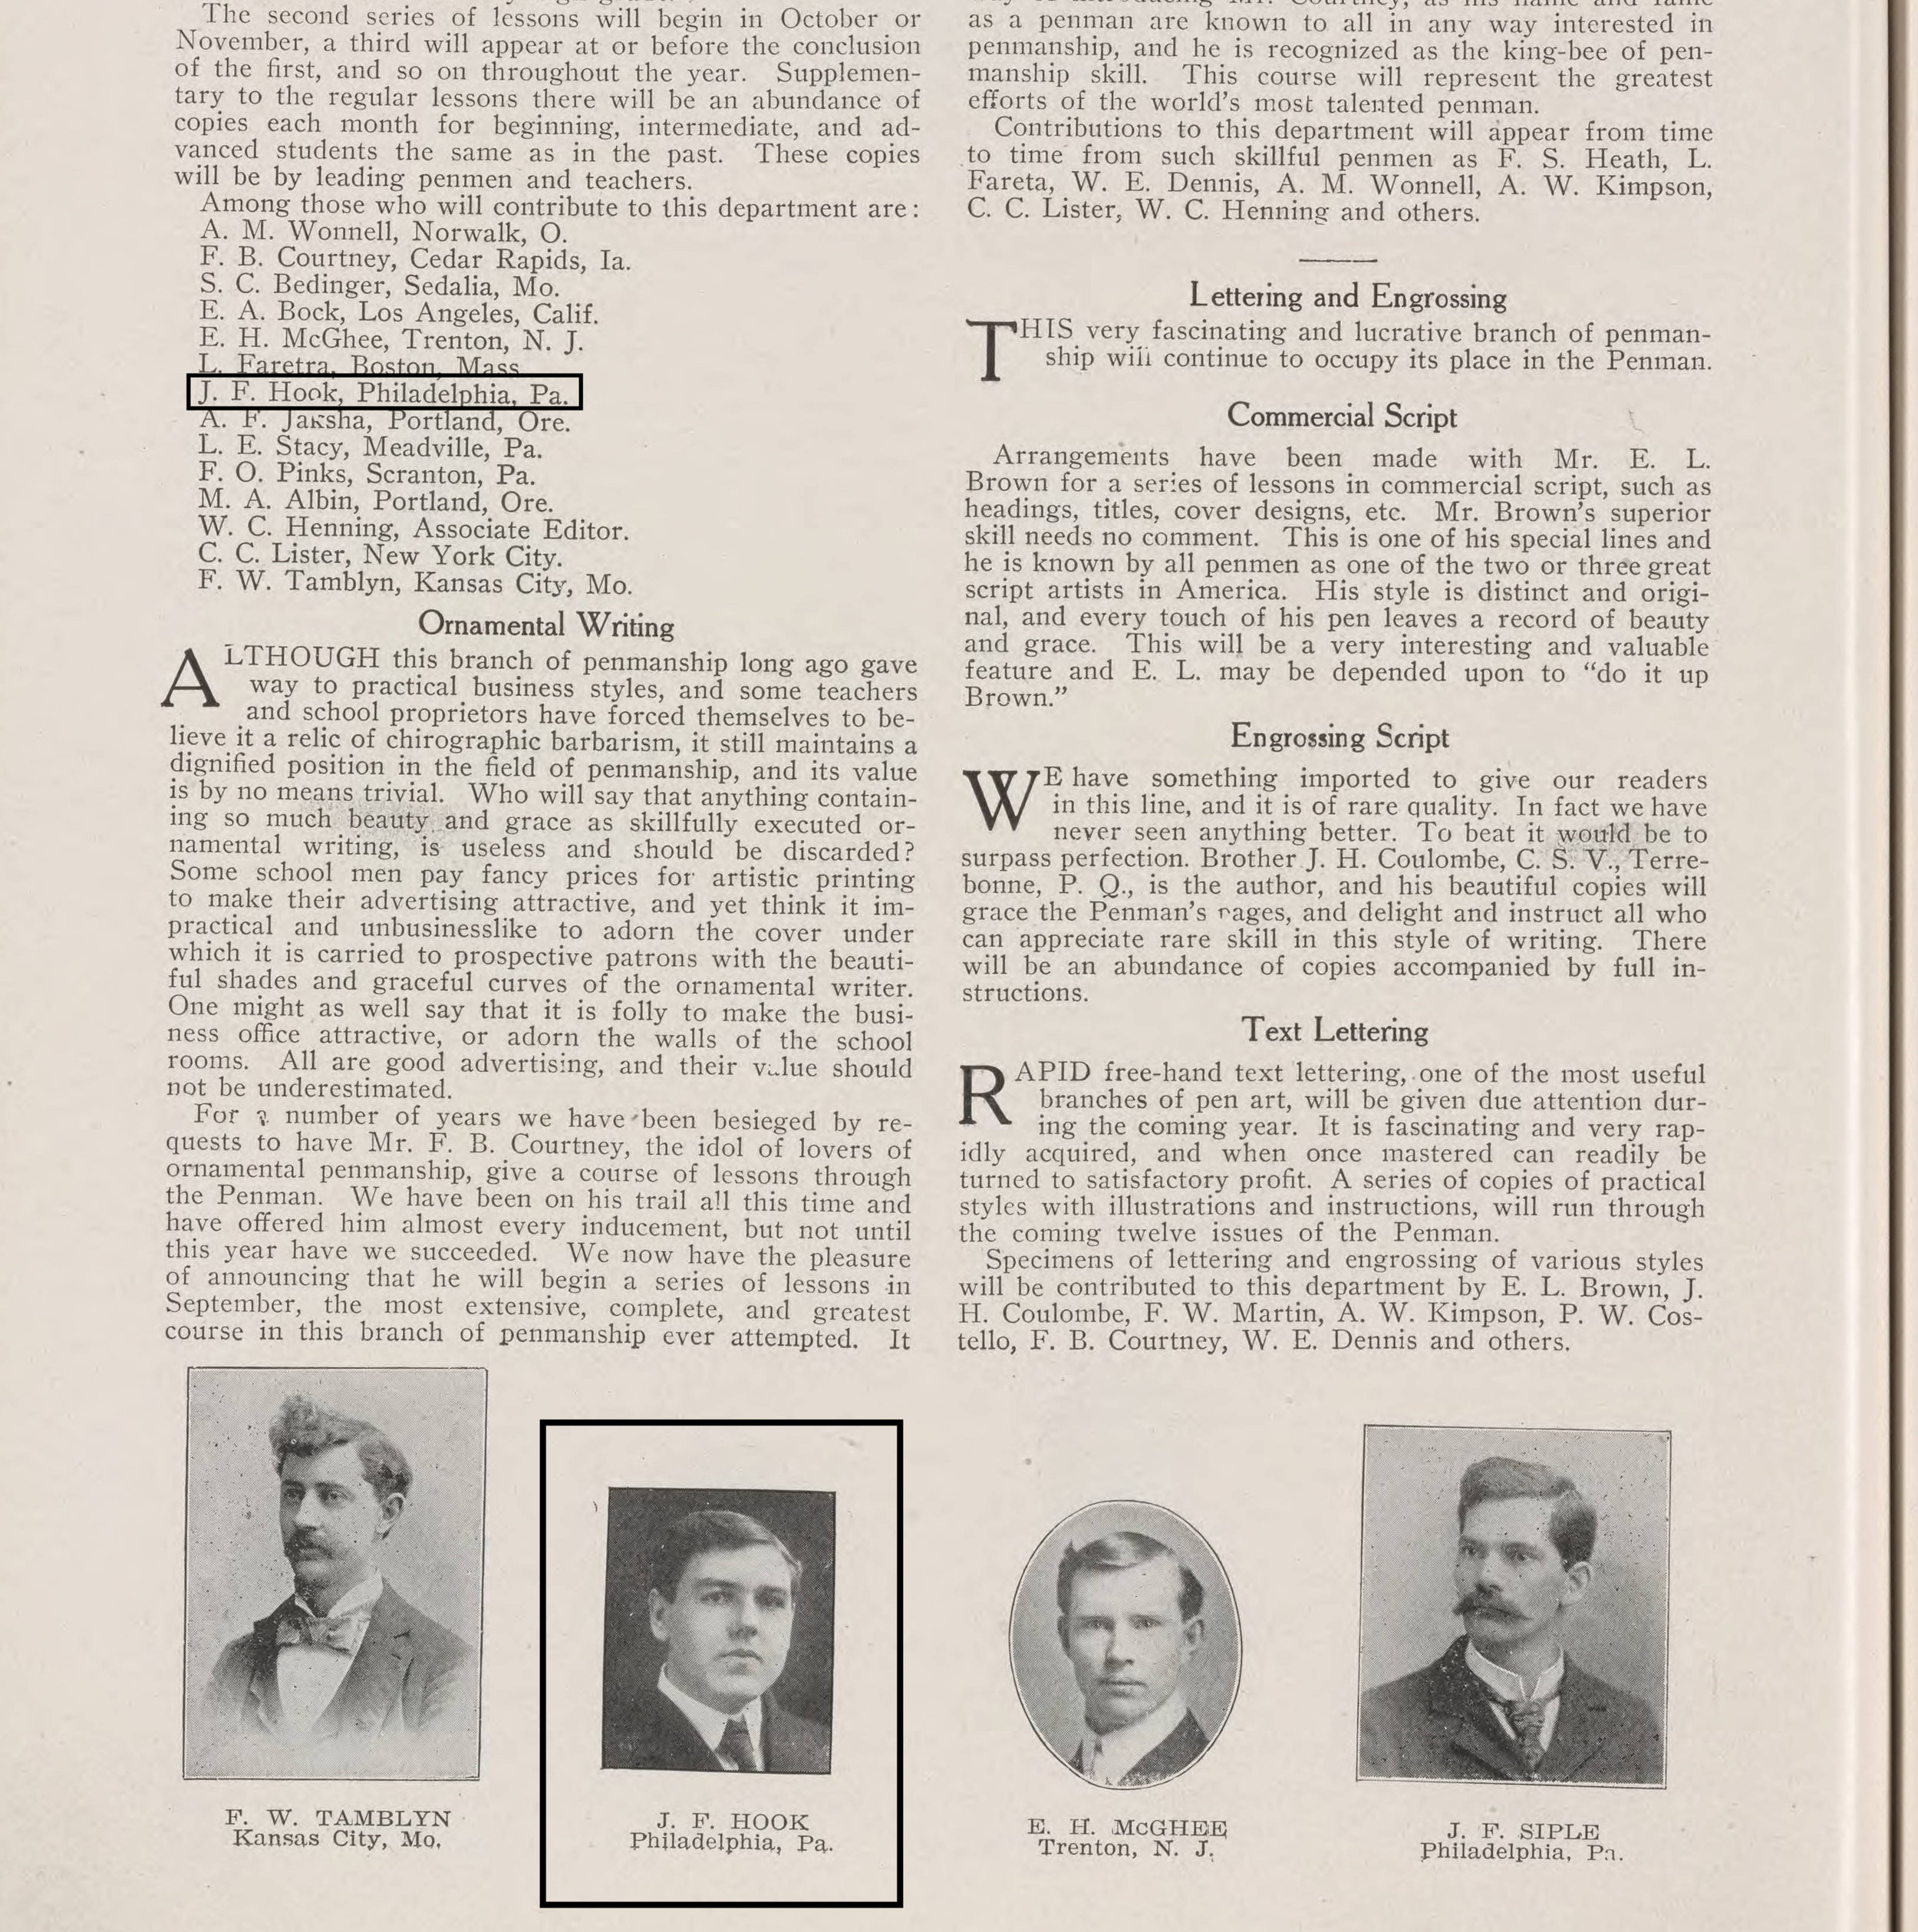 August 1908 issue of The American Penman, Vol. 25, No. 5